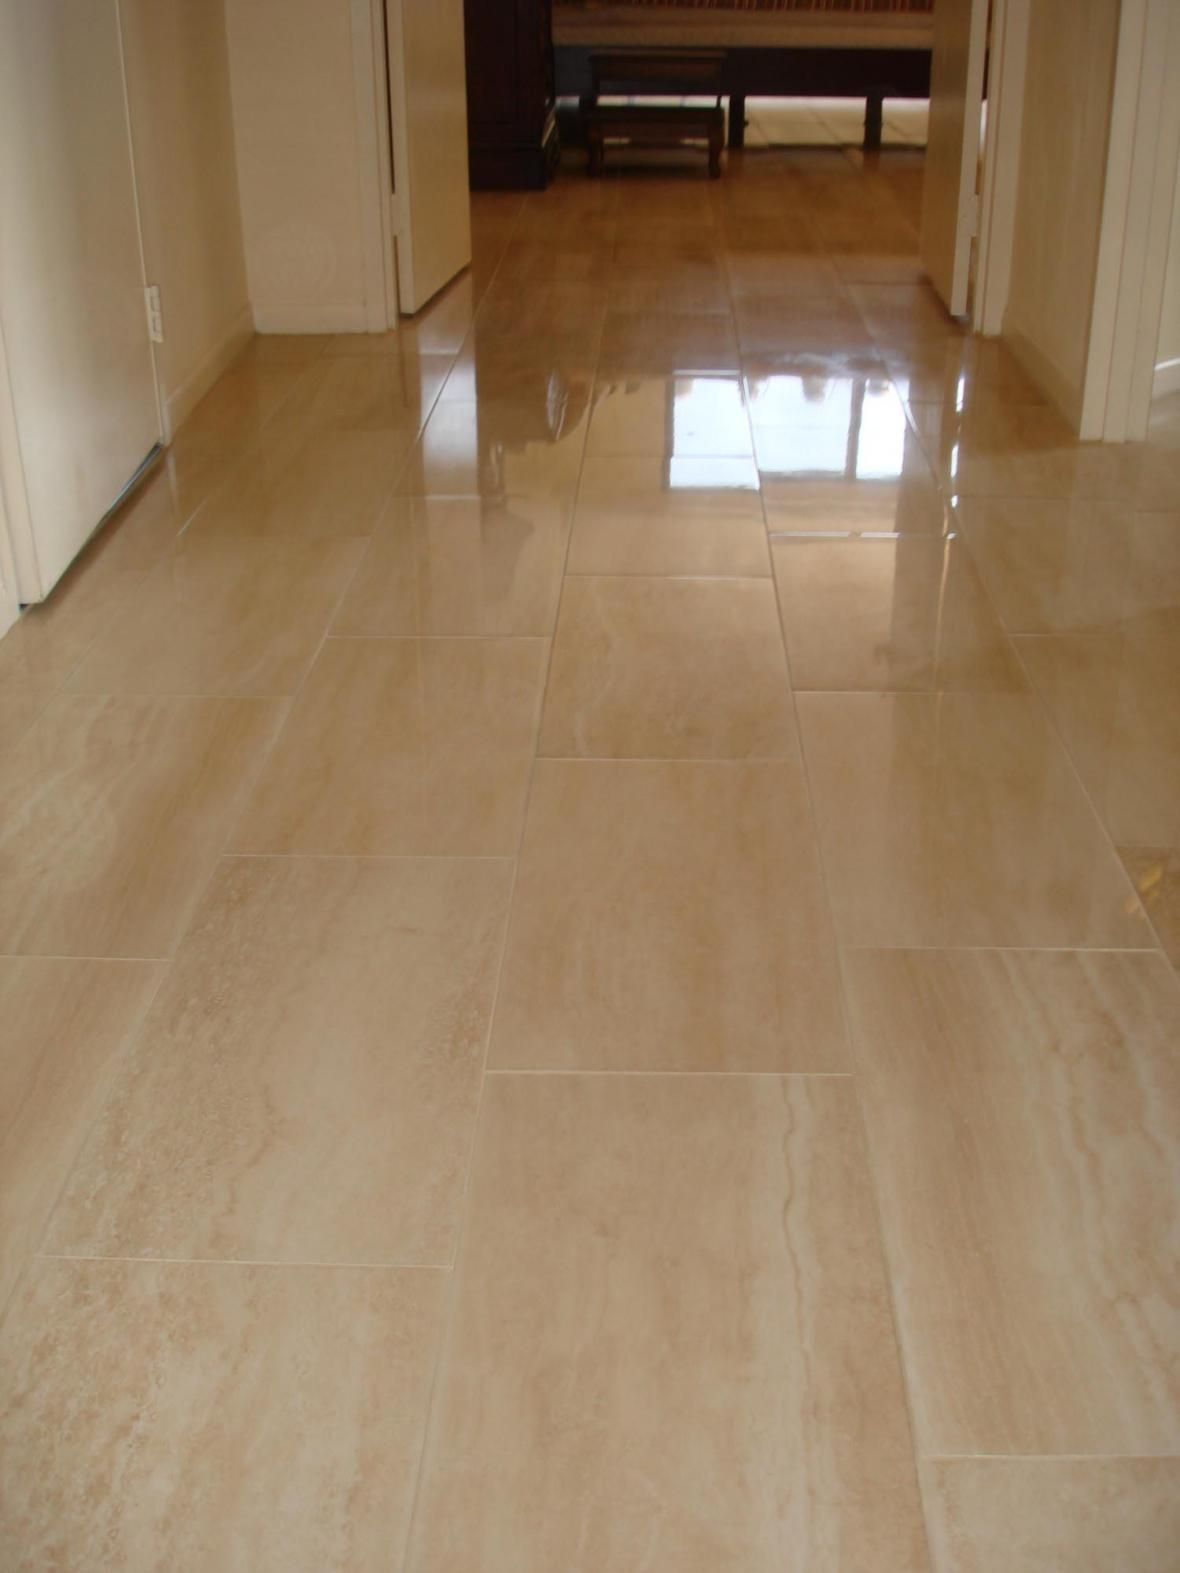 Porcelain Tile Floor In Hallway Ceramic Floor Tile Tile Floor Tile Floor Living Room